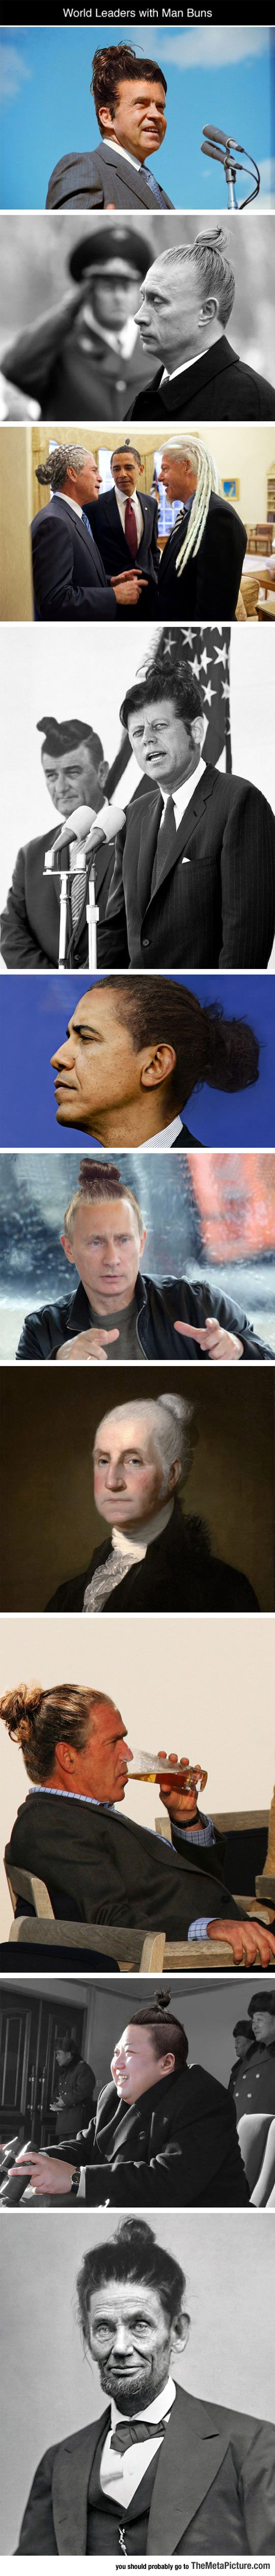 Leaders With Man Buns. So bad I can't look at it without laughing.